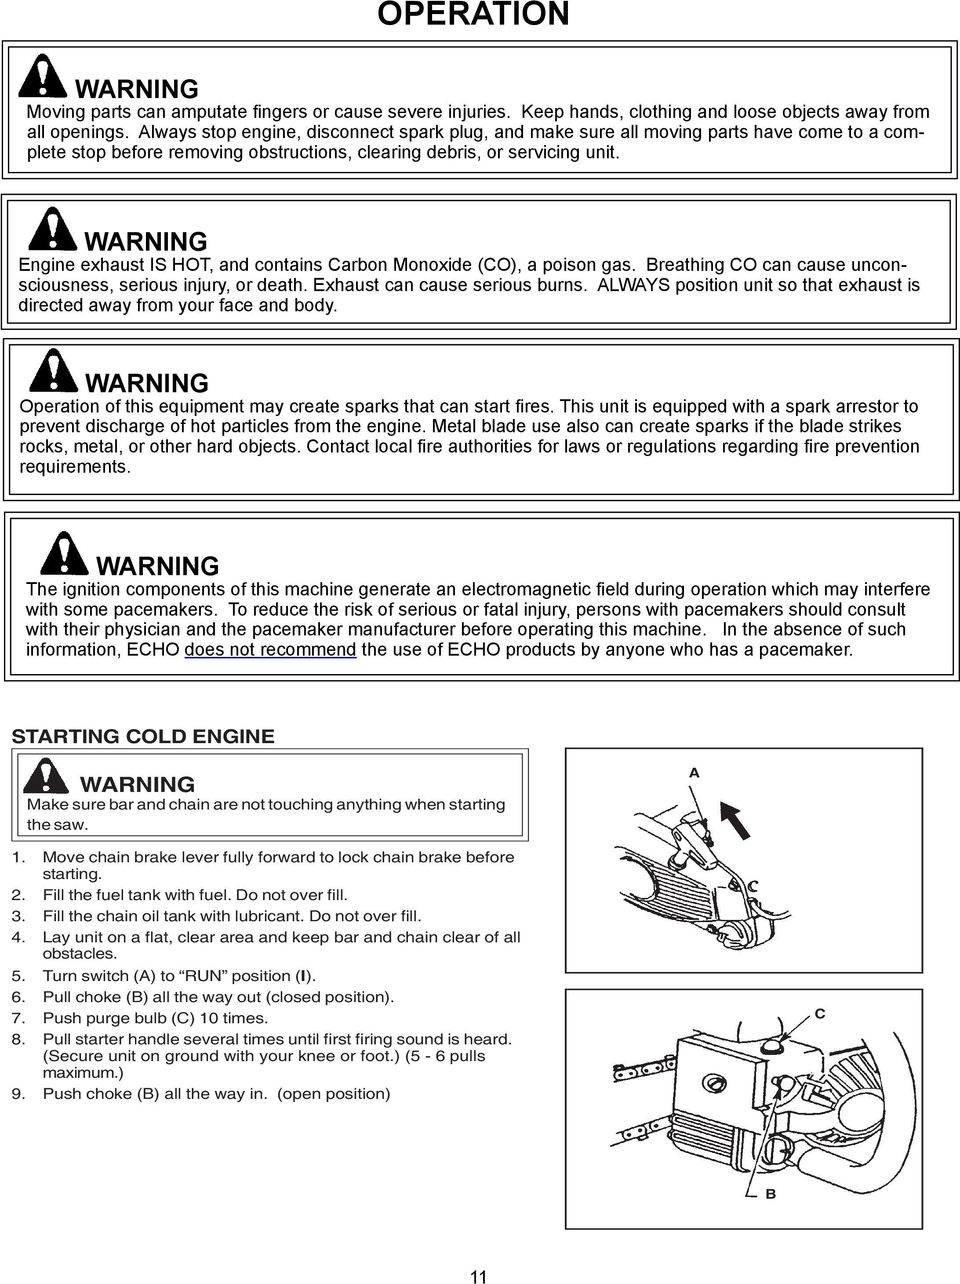 Chain Saw Instruction Manual Pdf Wildfire Scooter Kick Stand Saftey Switch Wiring Diagram Warning Engine Exhaust Is Hot And Contains Carbon Monoxide Co A Poison